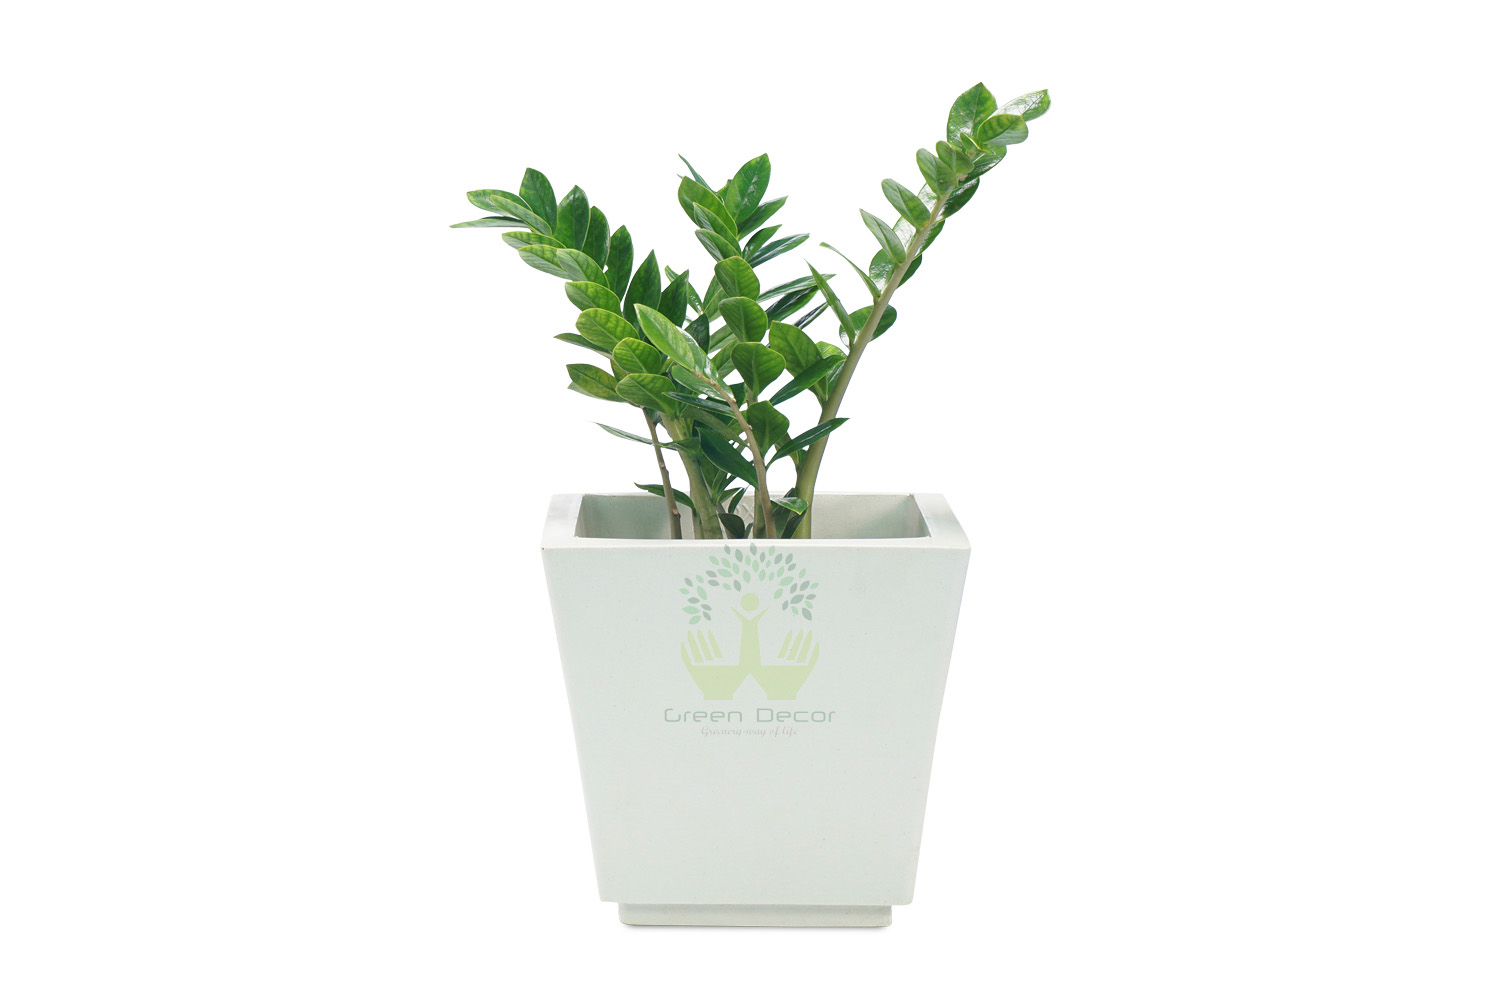 Buy Zed Plants , White Pots and seeds in Delhi NCR by the best online nursery shop Greendecor.